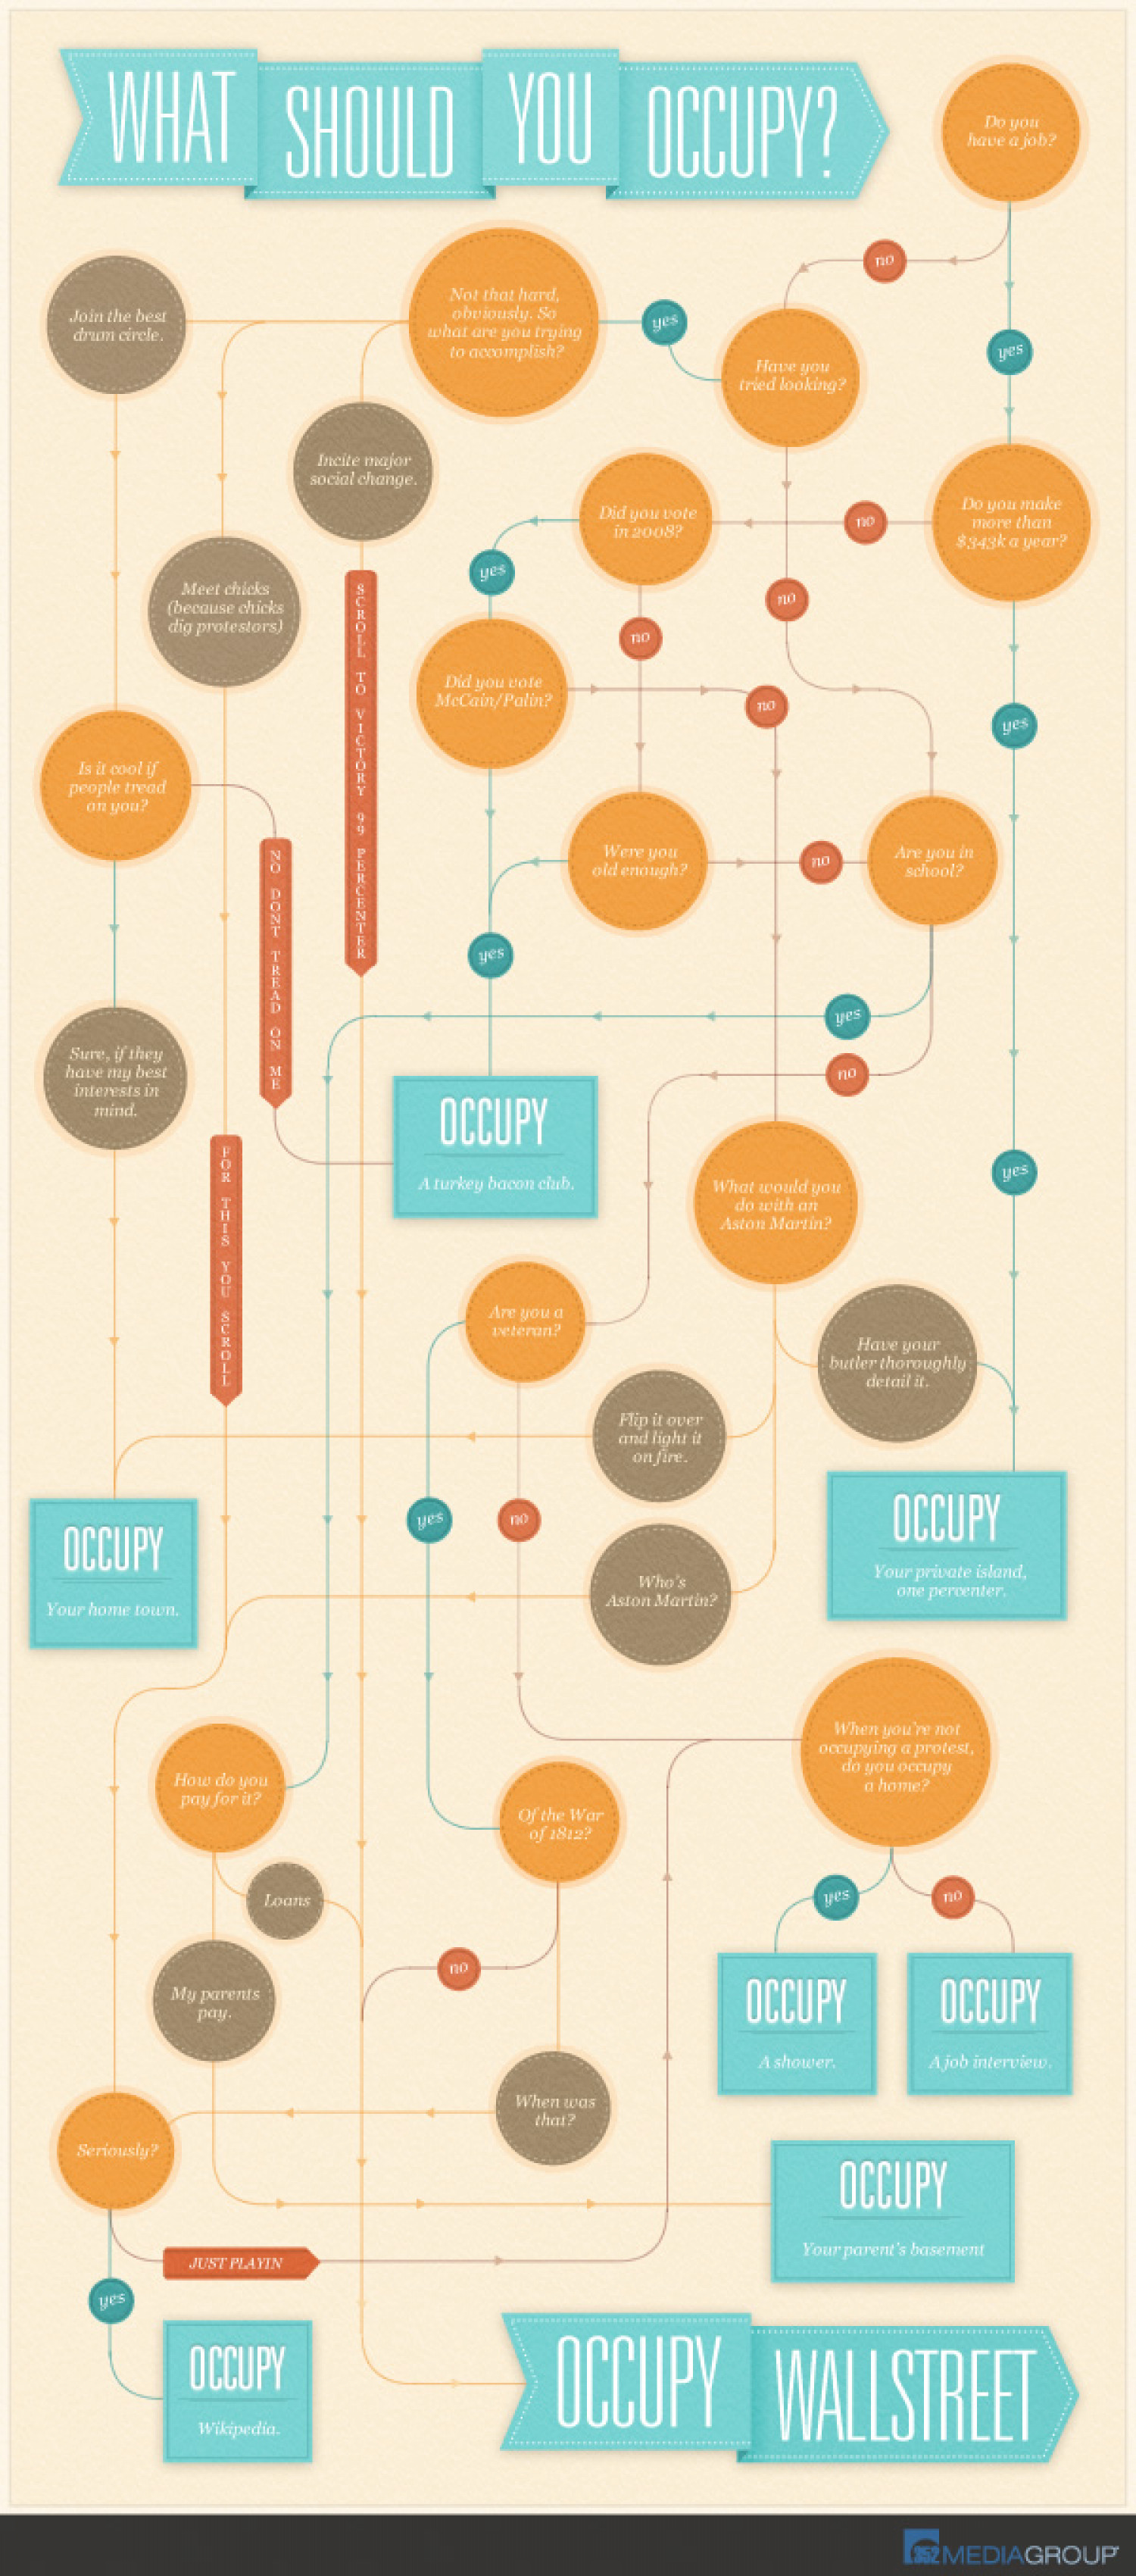 What Should You Occupy? Infographic